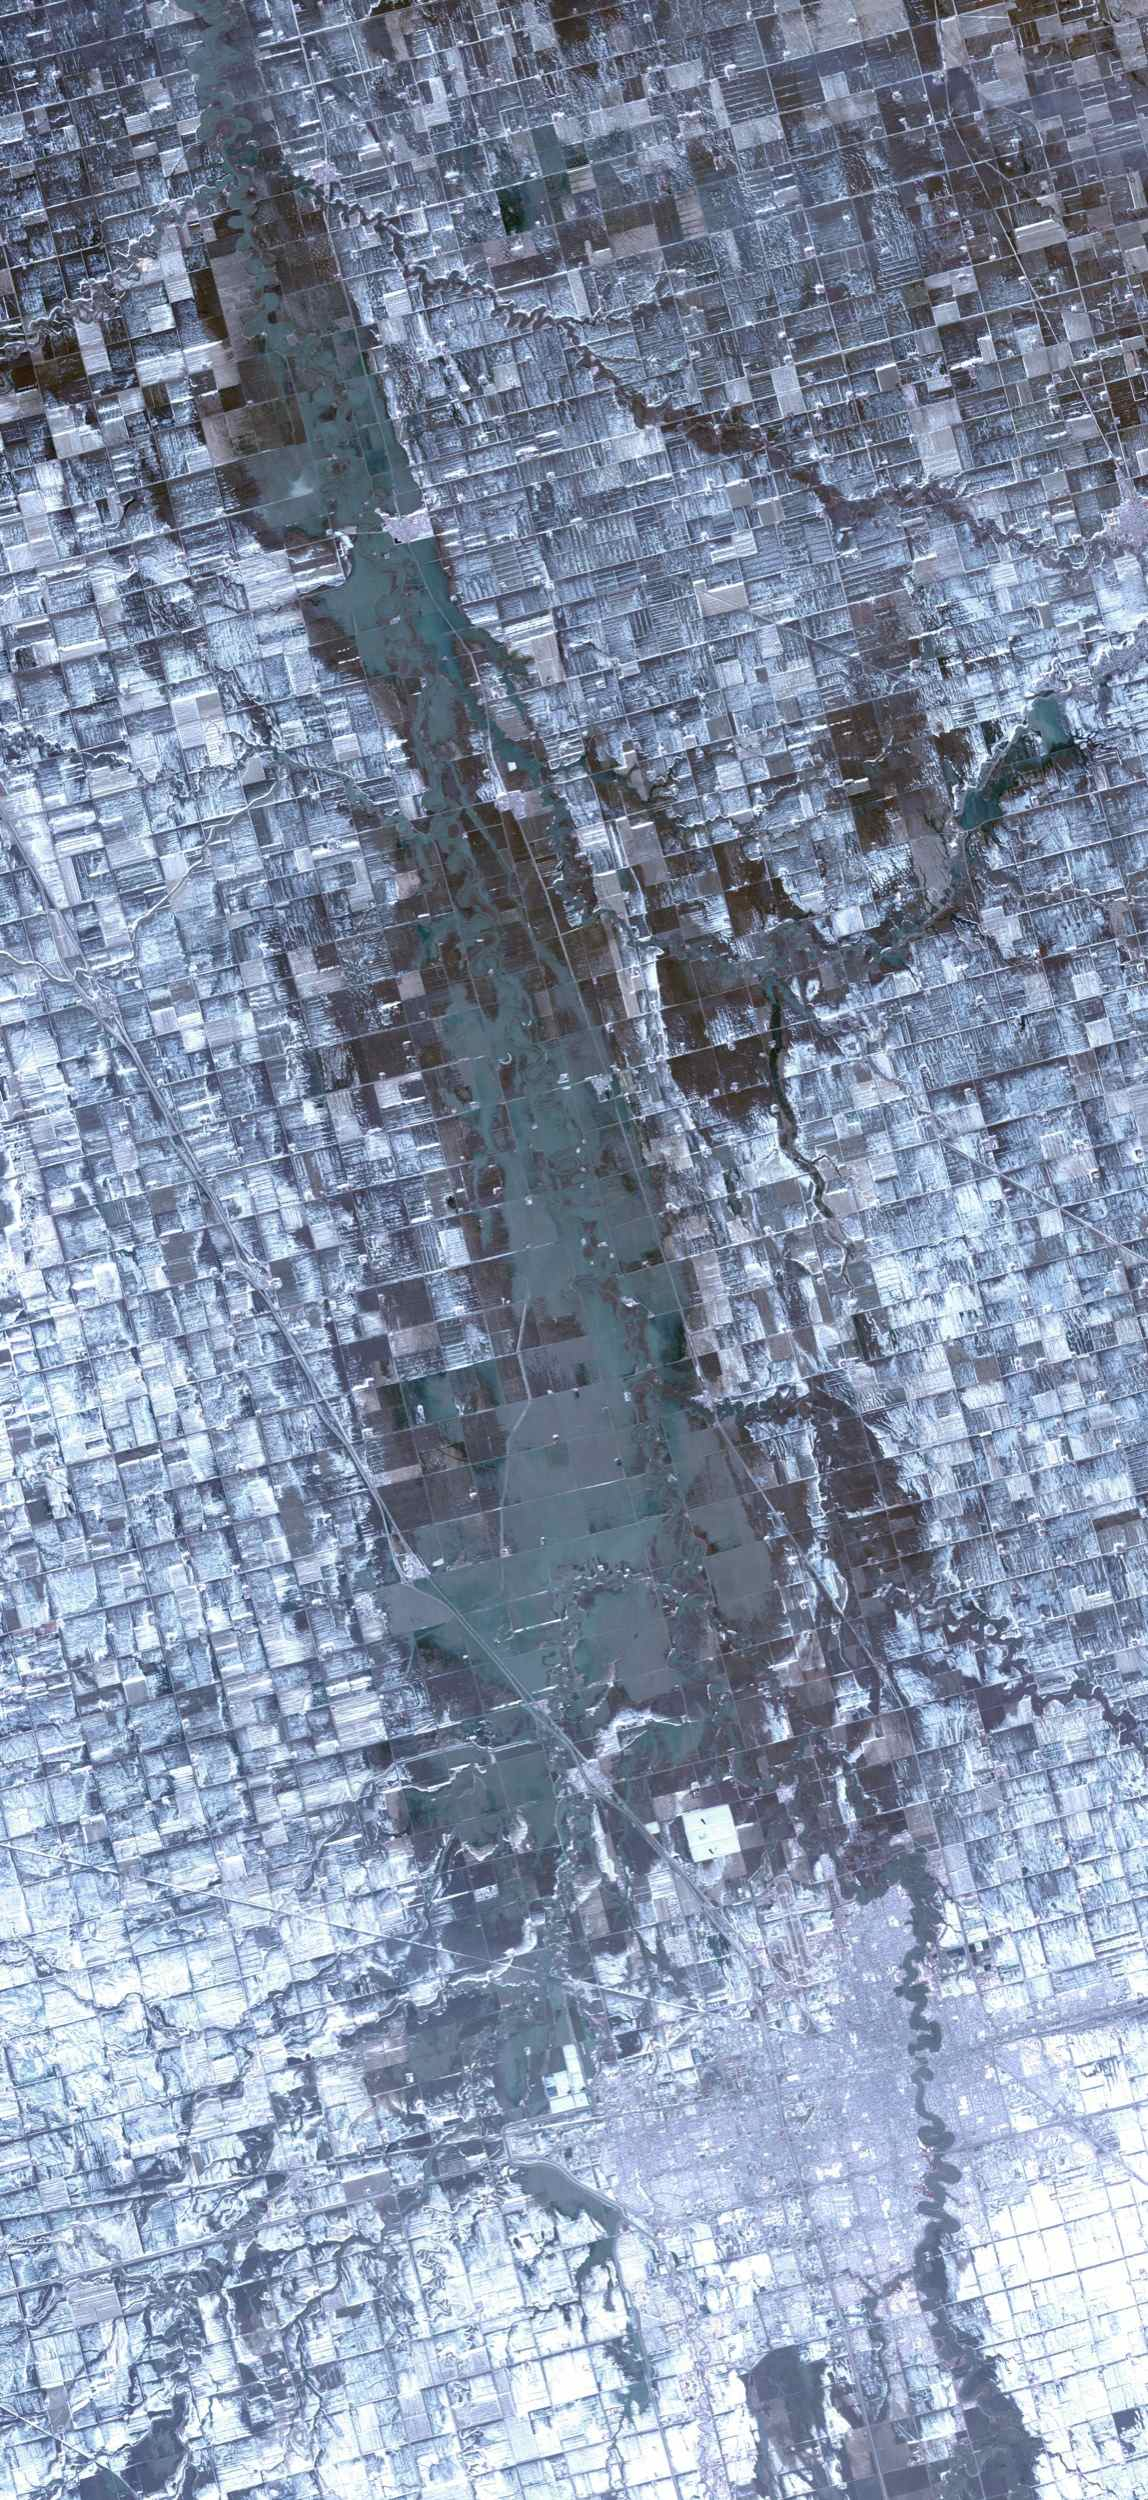 The Spring, 2009 floods along the Red River between North Dakota and Minnesota affected cities in the two states, especially Fargo and Whitehead. NASA's Terra spacecraft acquired this image on April 9, 2009.